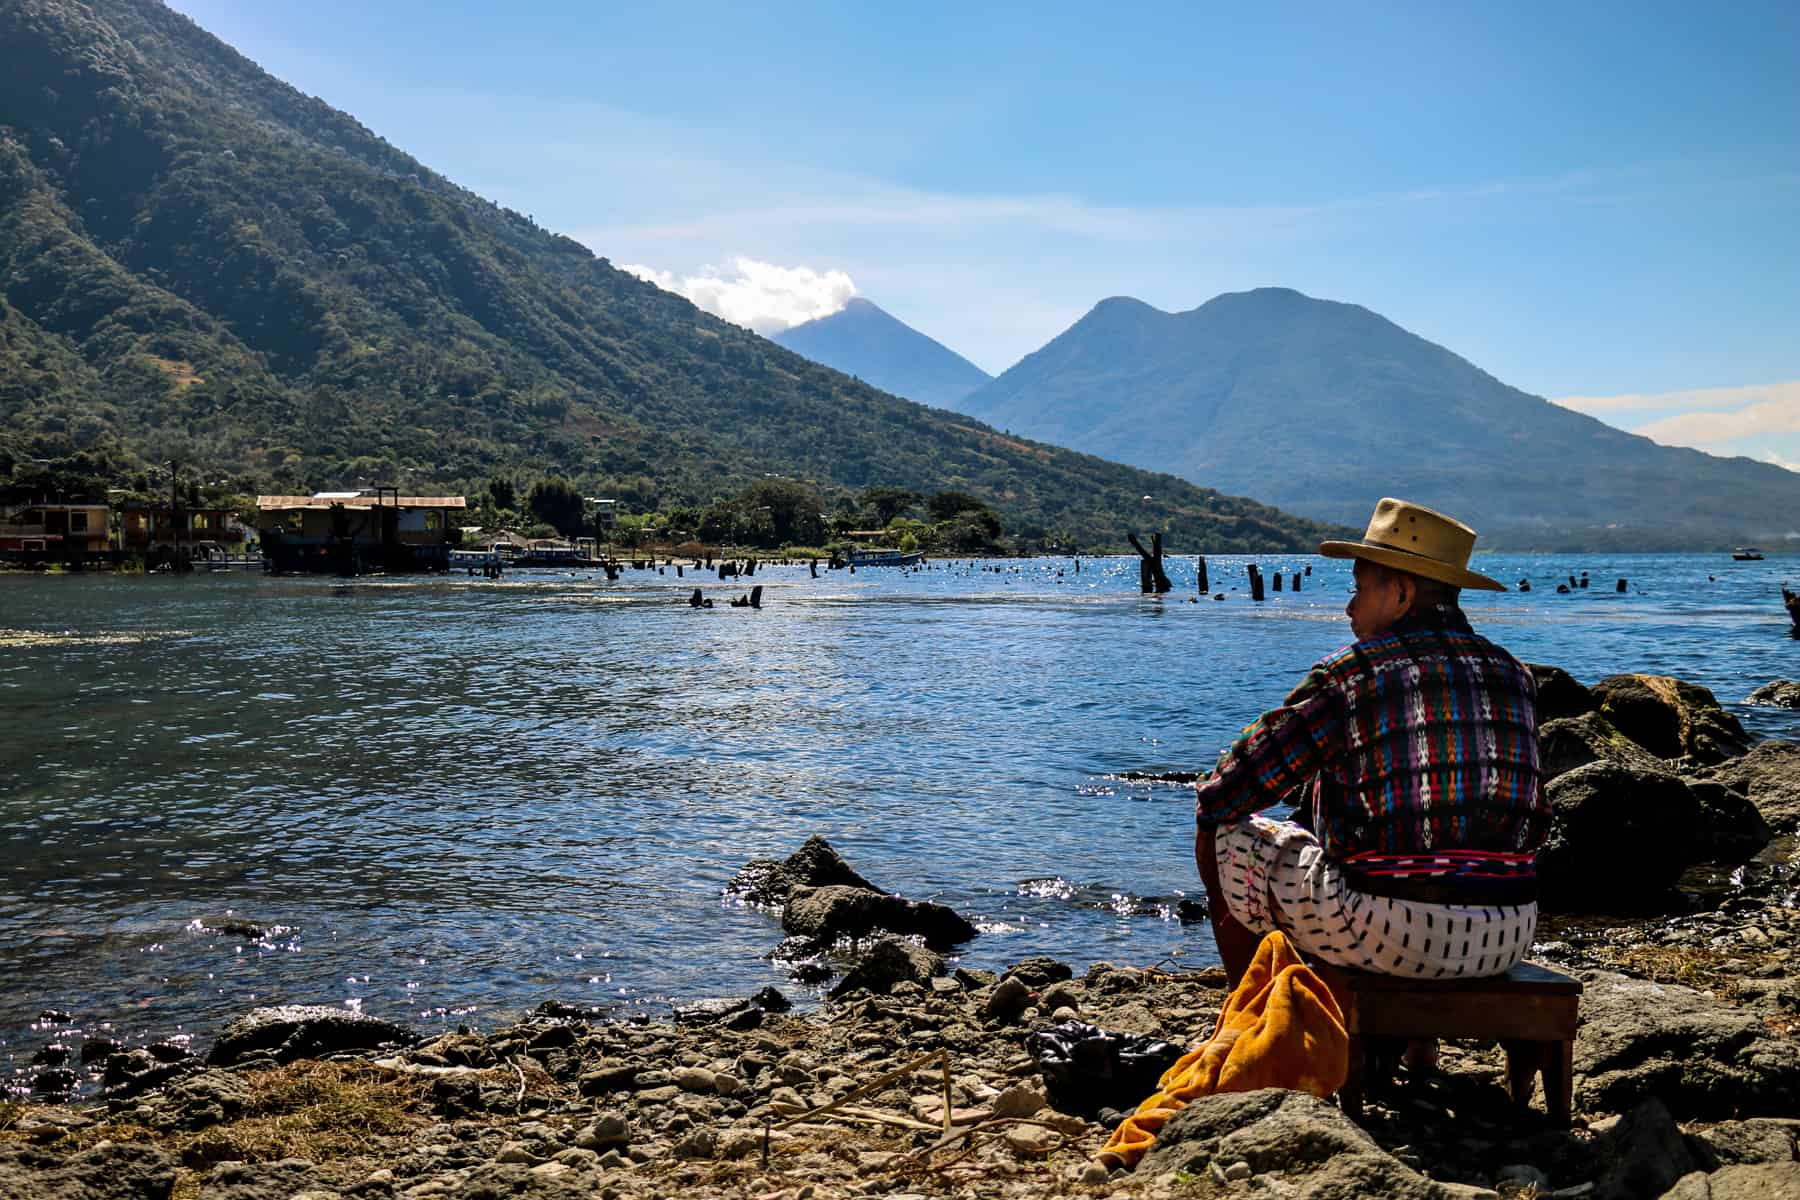 Man sits by a lake with two volcanoes in the background at Lake Atitlan, Guatemala